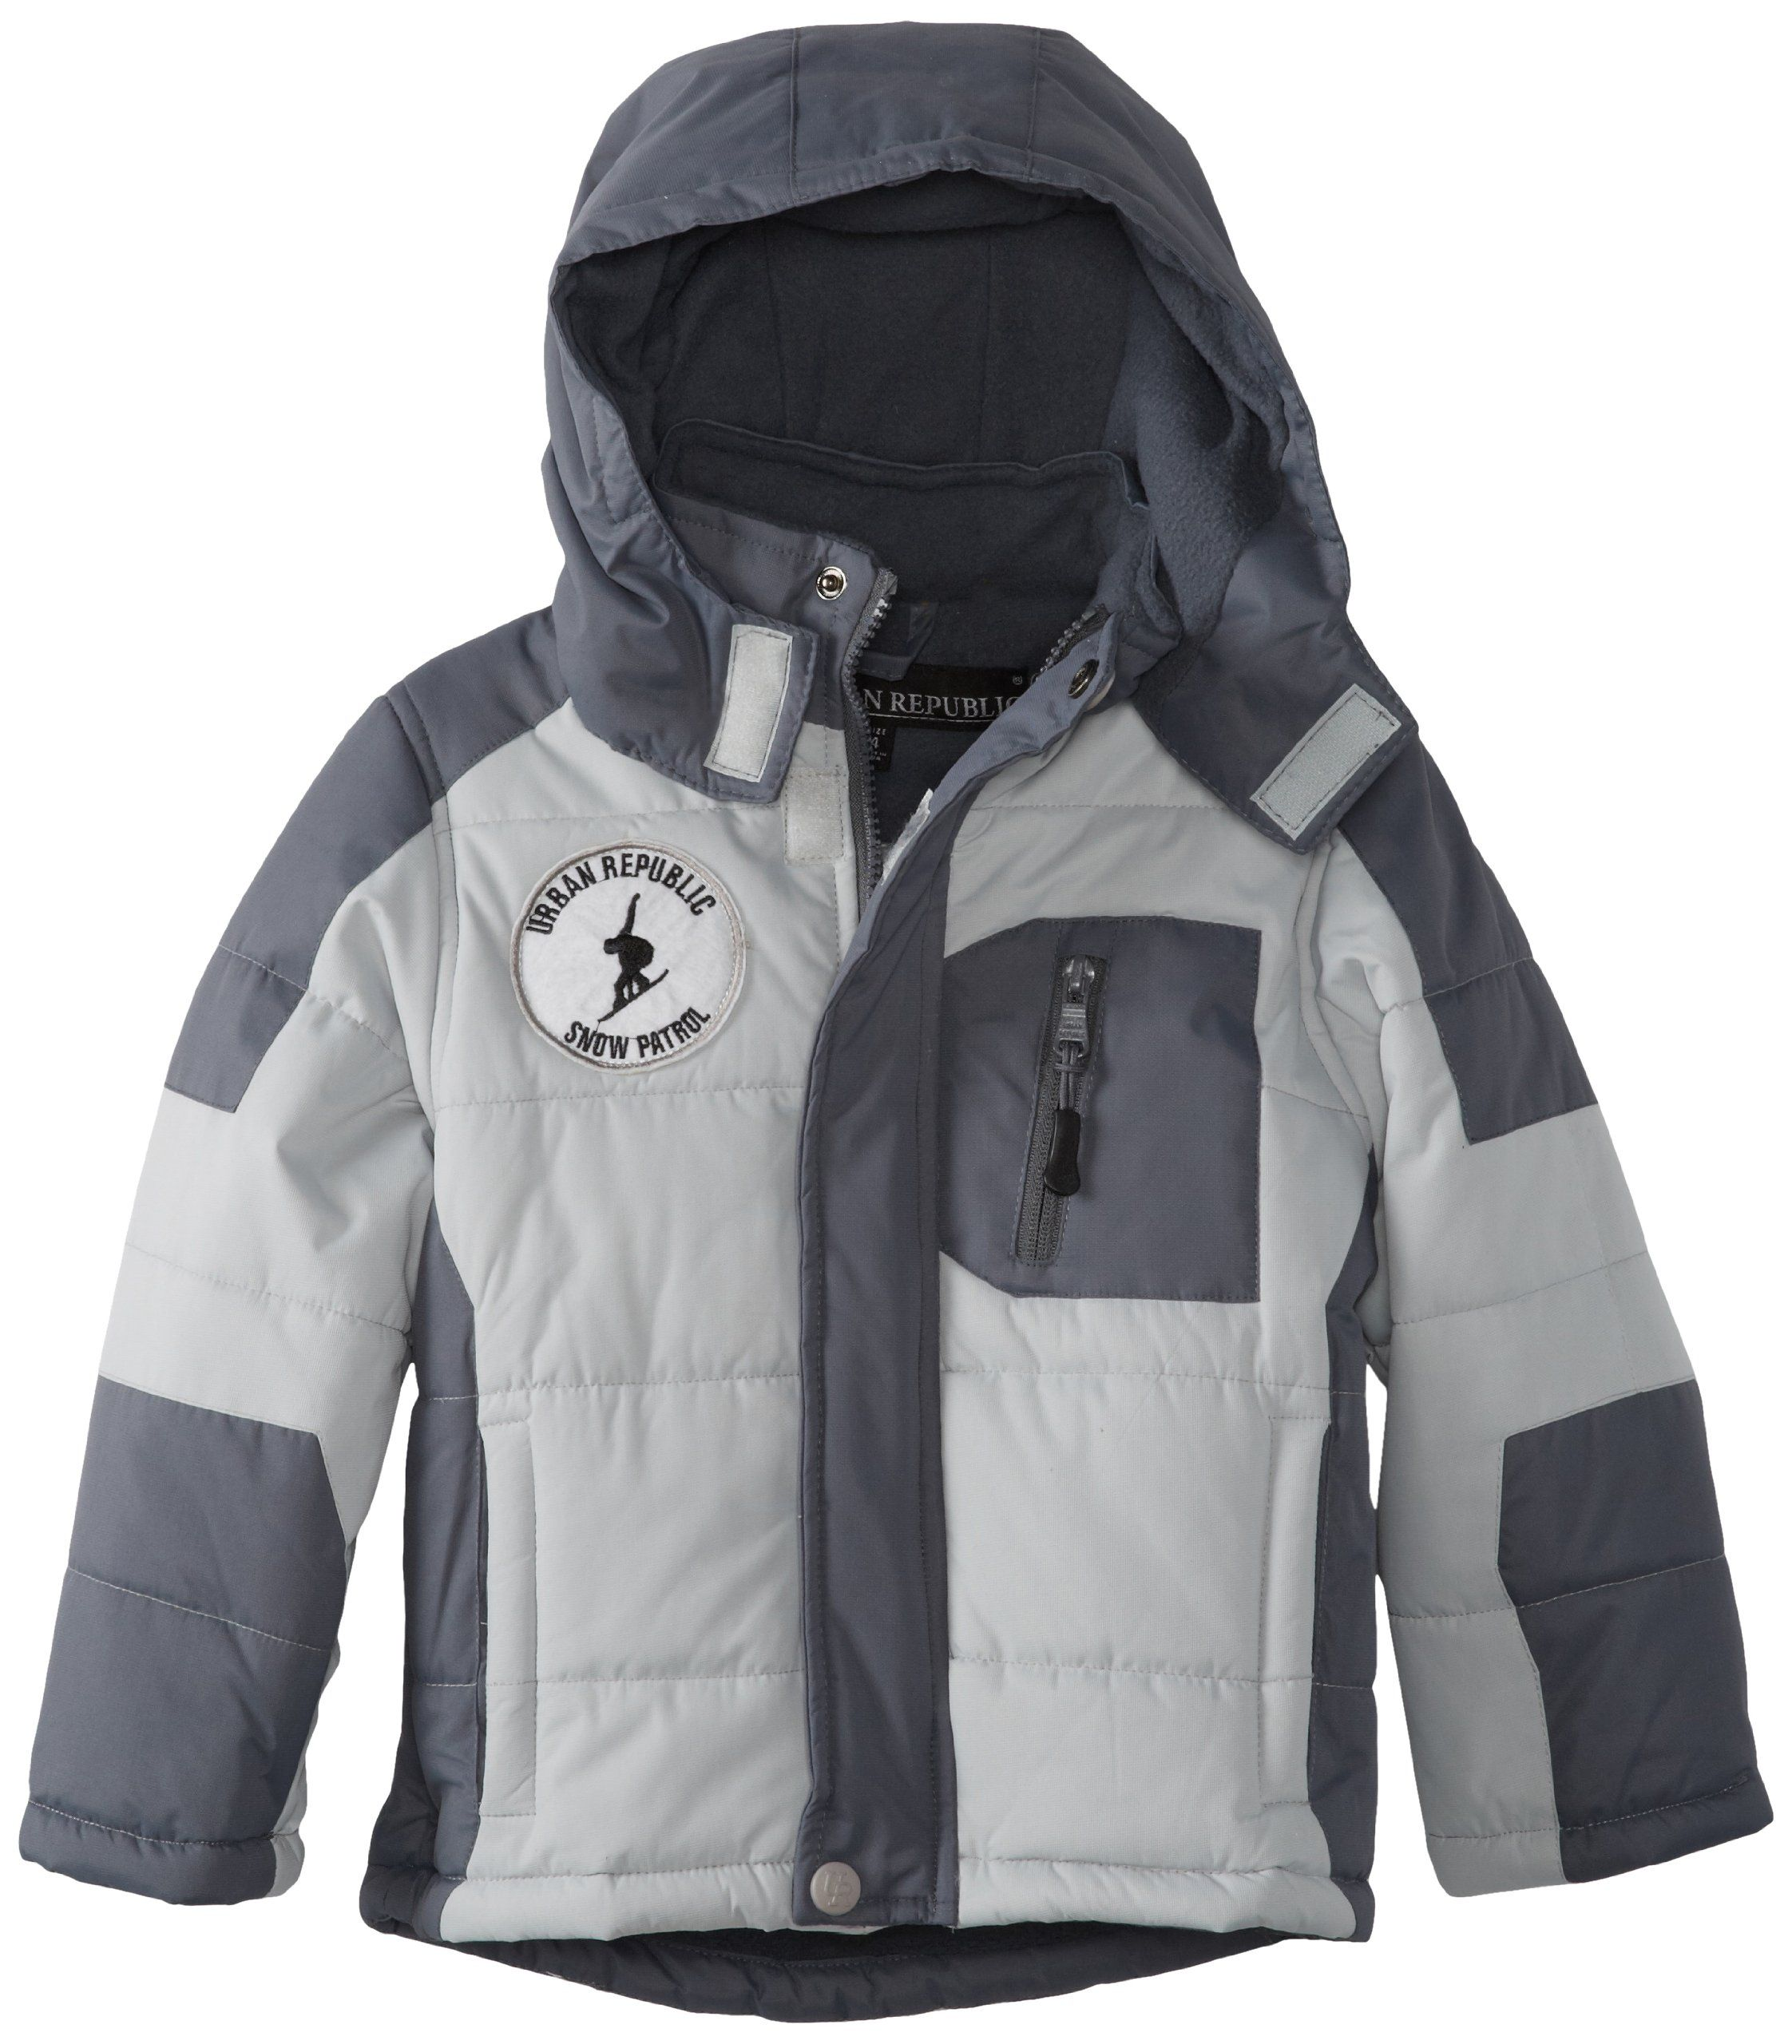 b44e518d7 Urban Republic Little Boys  Color-Block Puffer Jacket. Quilted ...